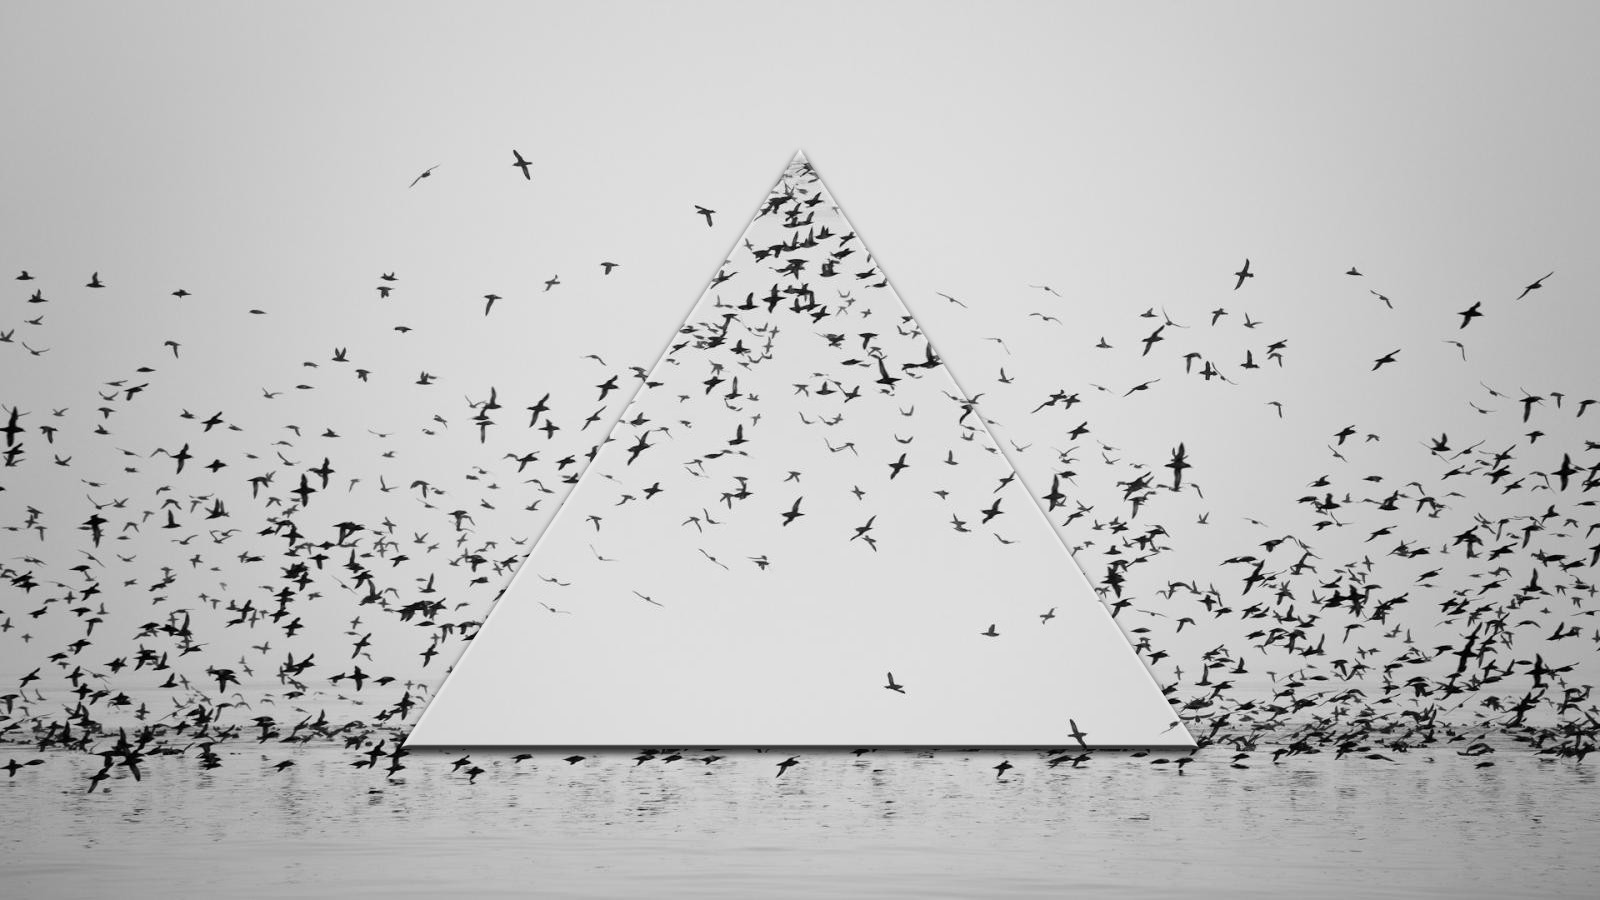 Artwork Birds Monochrome Flying Wedge Triangle Simple Water Reflection Minimalism Photo